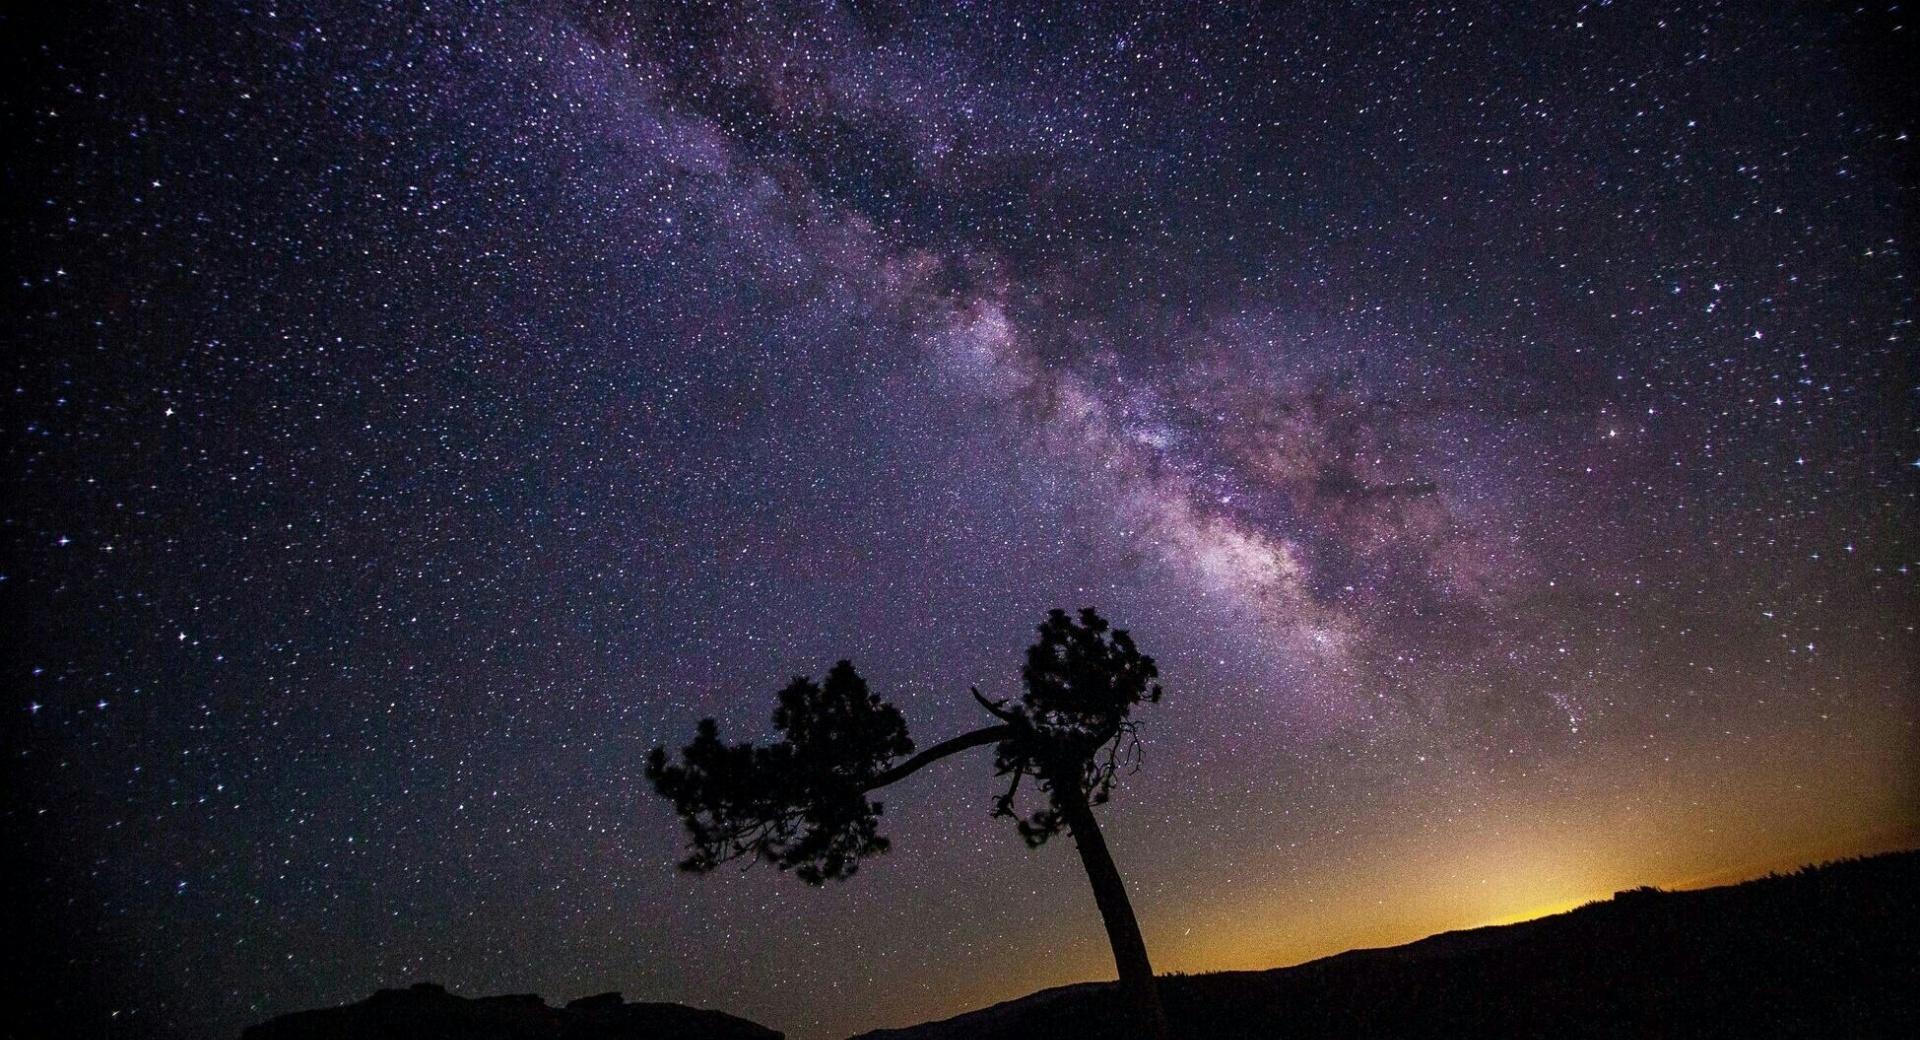 Milkyway in Night Sky wallpapers HD quality